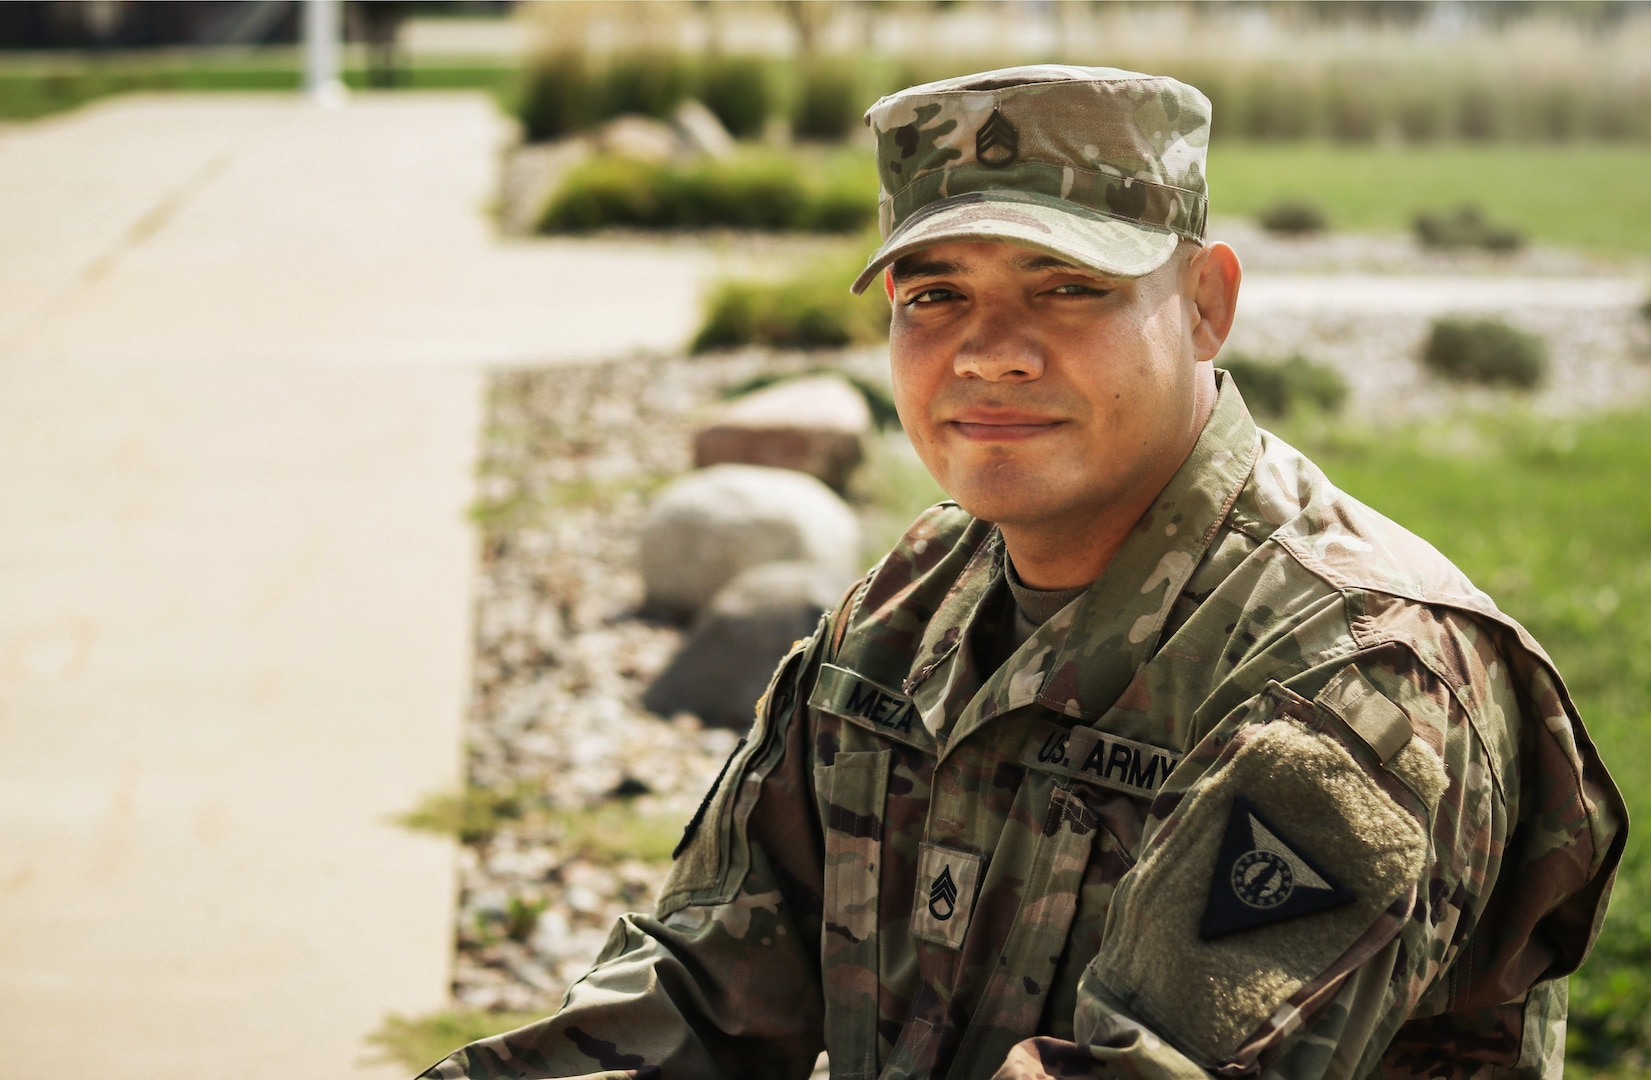 Staff Sgt. Henry Meza, an Iowa Army National Guard Soldier who works with the Service to Citizenship program, poses for a photo at the Camp Dodge Joint Maneuver Training Center in Johnston, Iowa, on Sept. 7, 2021. Meza grew up with a large family in Honduras, and became a U.S. citizen in 2013.